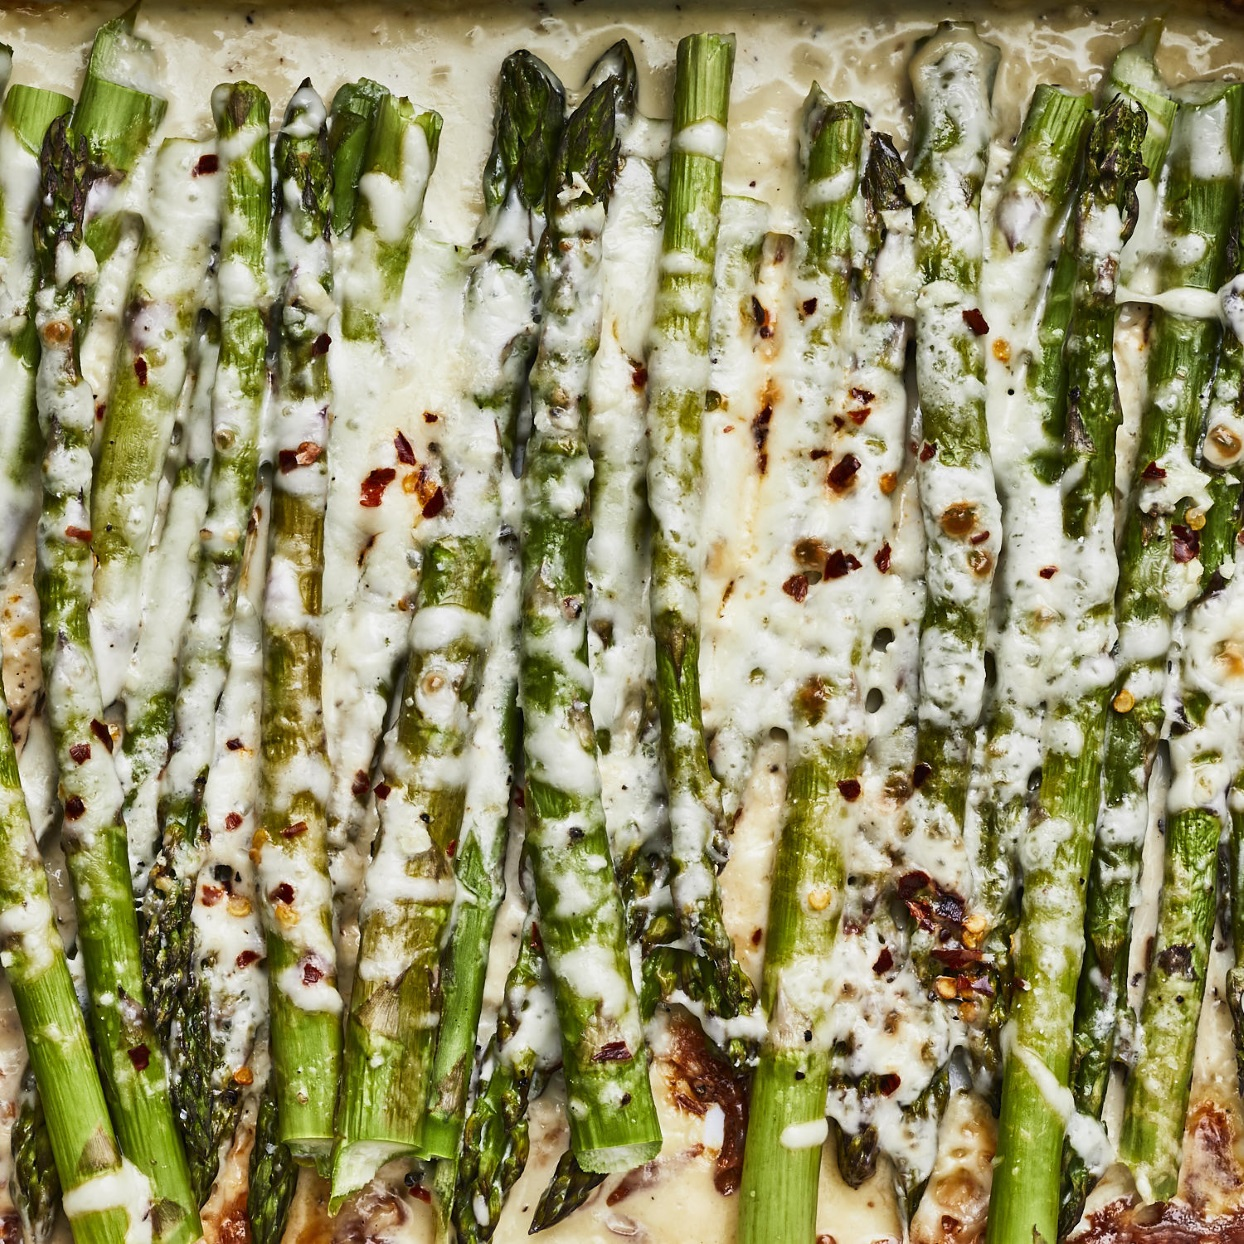 In this cheesy baked asparagus recipe, asparagus spears are roasted whole smothered in a creamy, cheesy garlic sauce. This low-carb side dish is a great way to entice picky eaters to eat their veggies! Pair it with roast chicken or steak. Source: EatingWell.com, January 2020